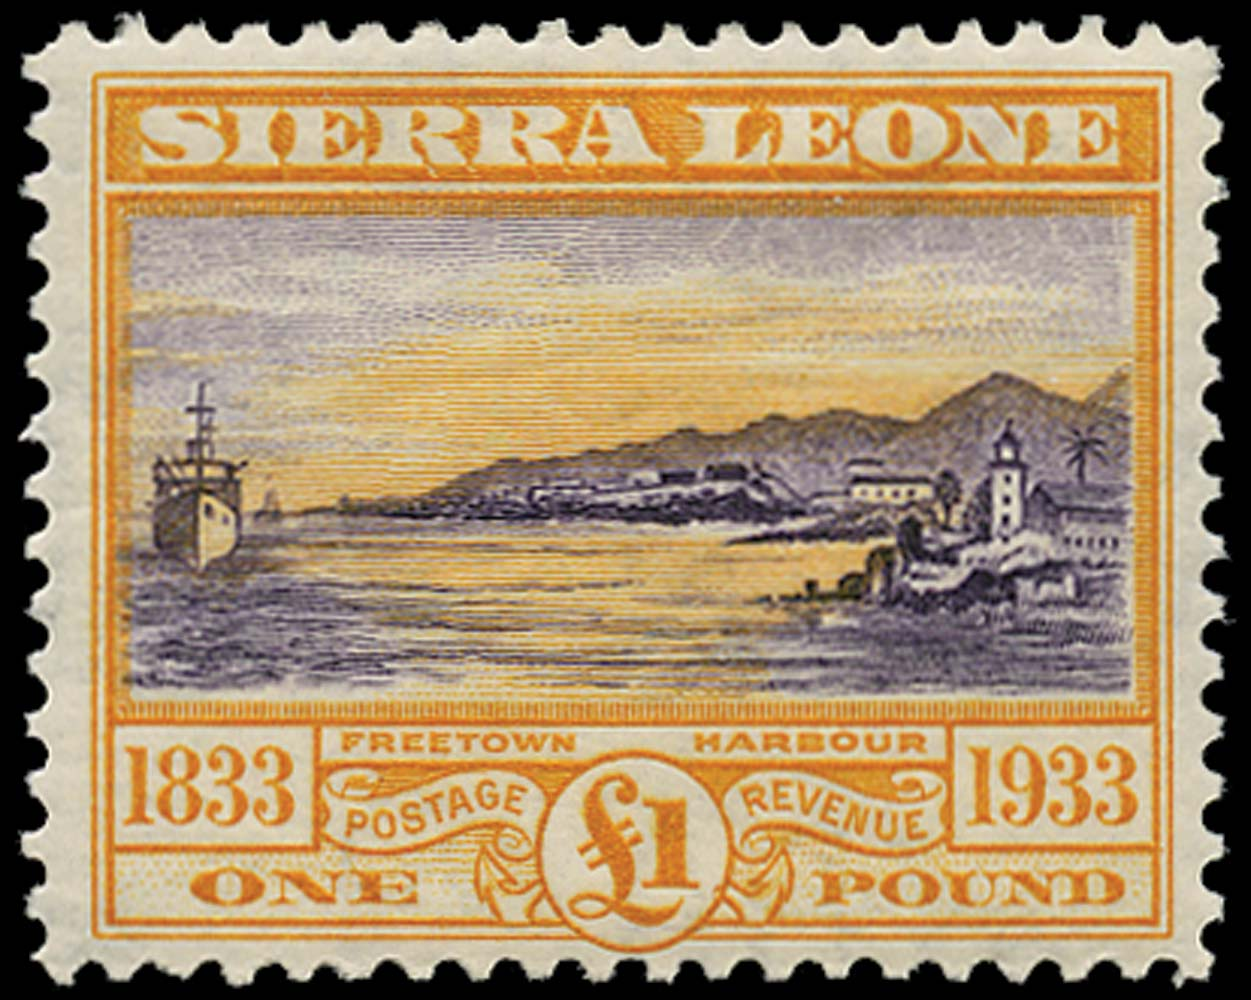 SIERRA LEONE 1933  SG180 Mint Wilberforce £1 Freetown harbour